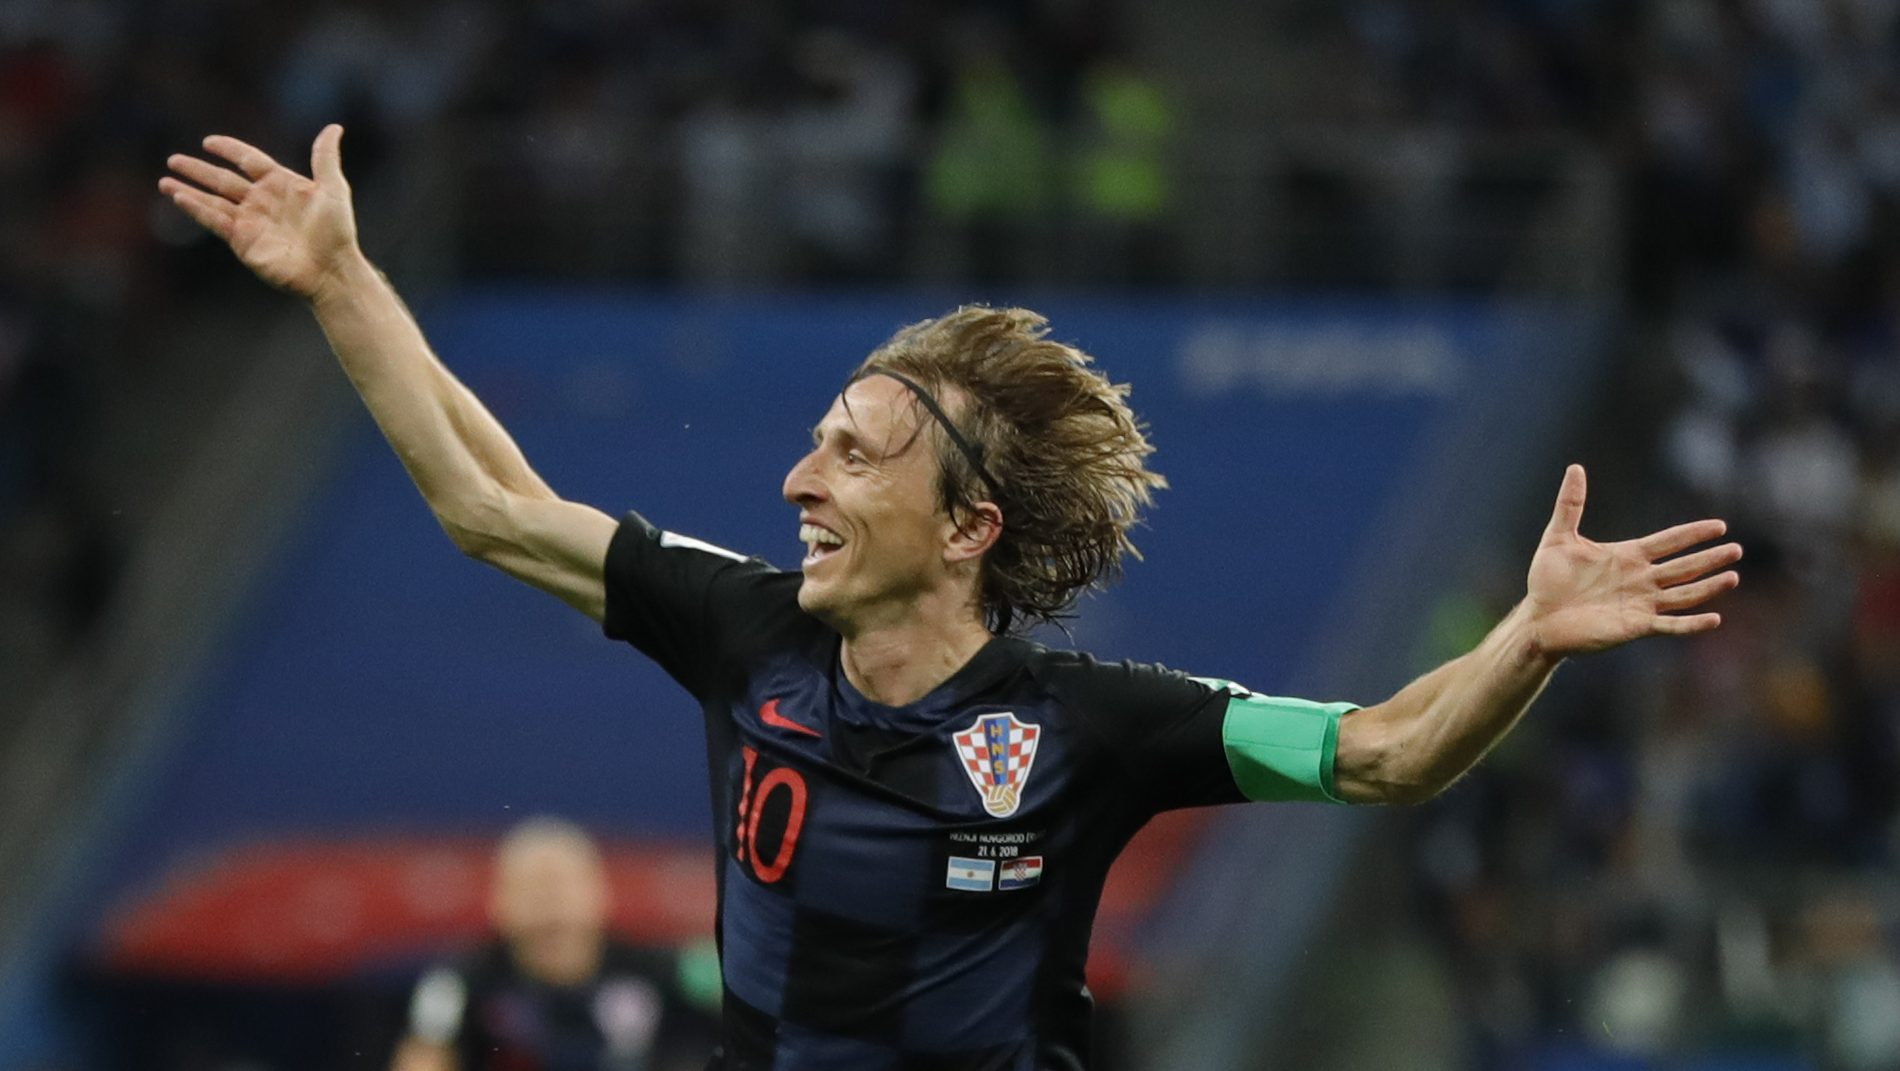 Modric urges humility after big win, stunning goal (video)